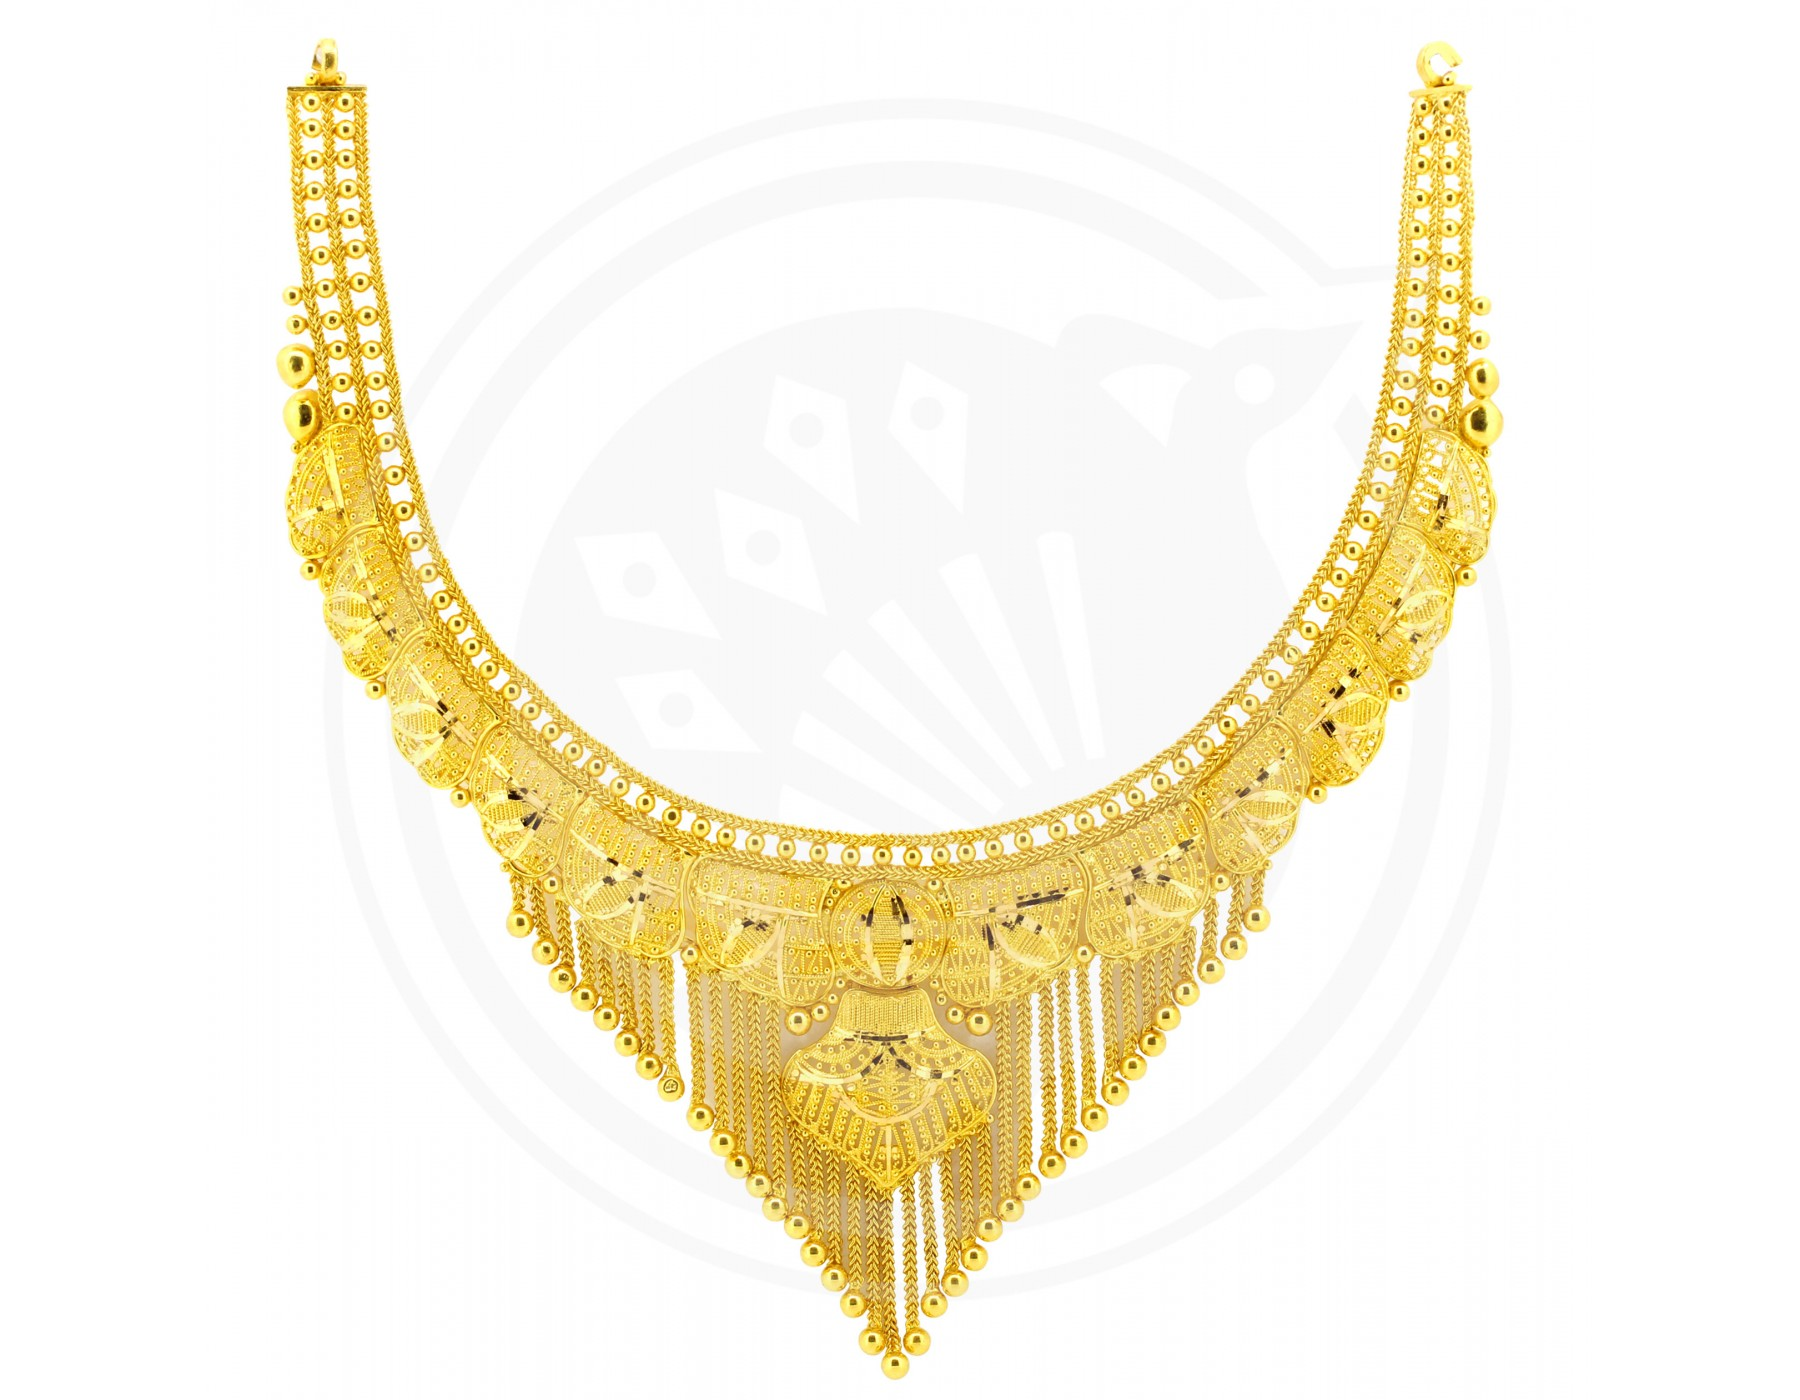 designs gold chains jewellery karat of best necklace in latest dubai carat